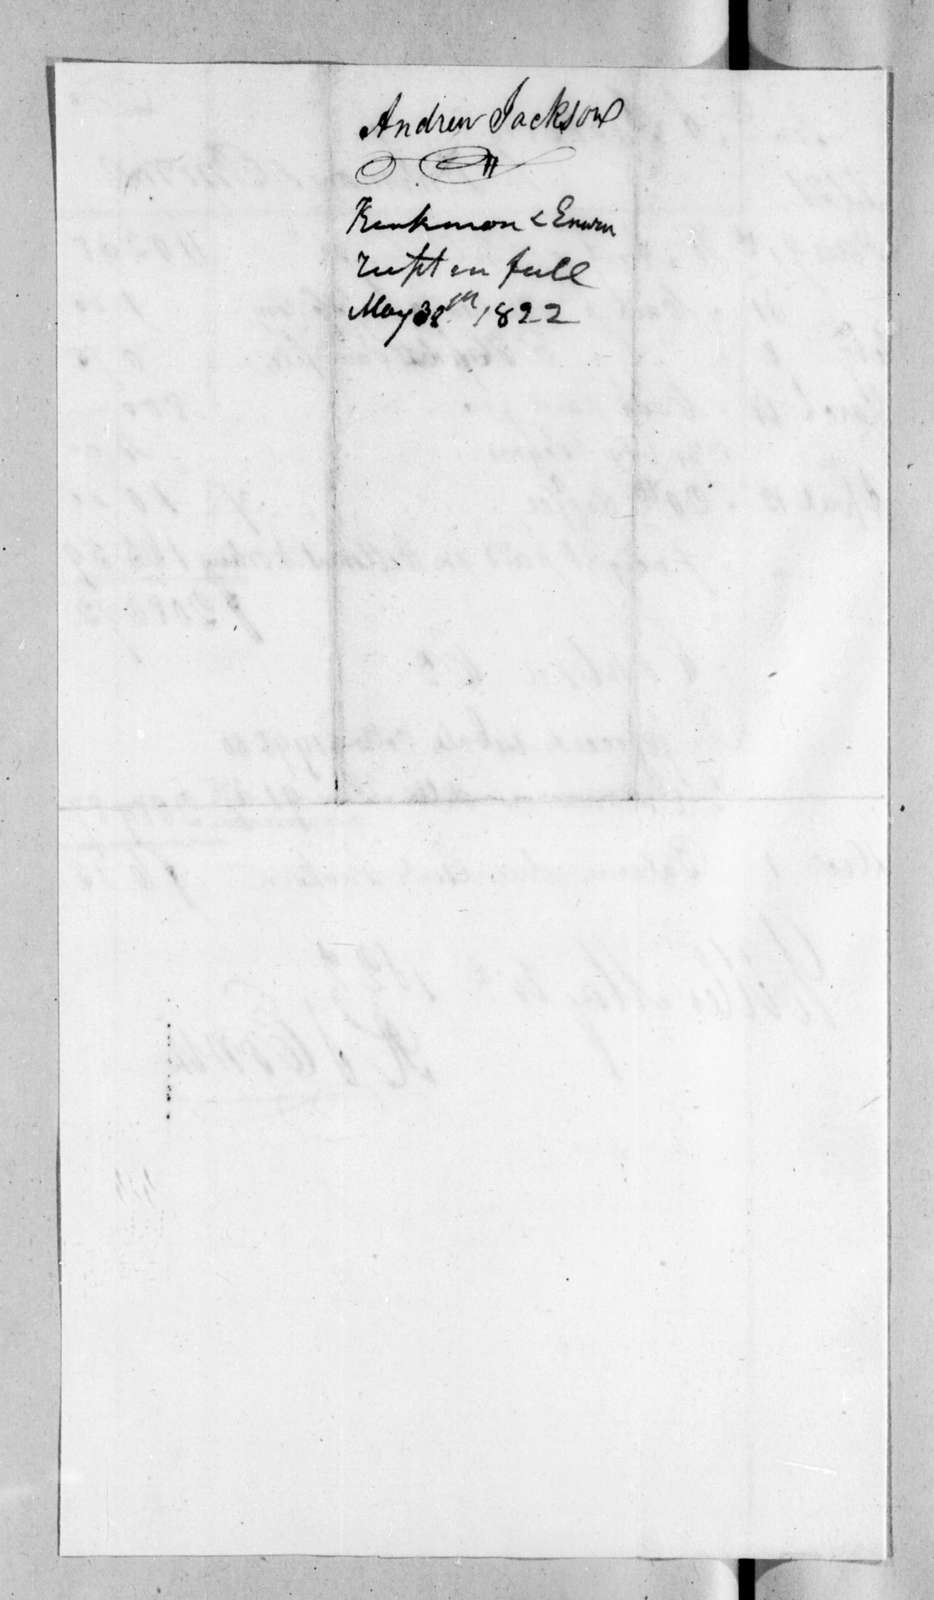 Kinkman & Erwine to Andrew Jackson, May 30, 1822